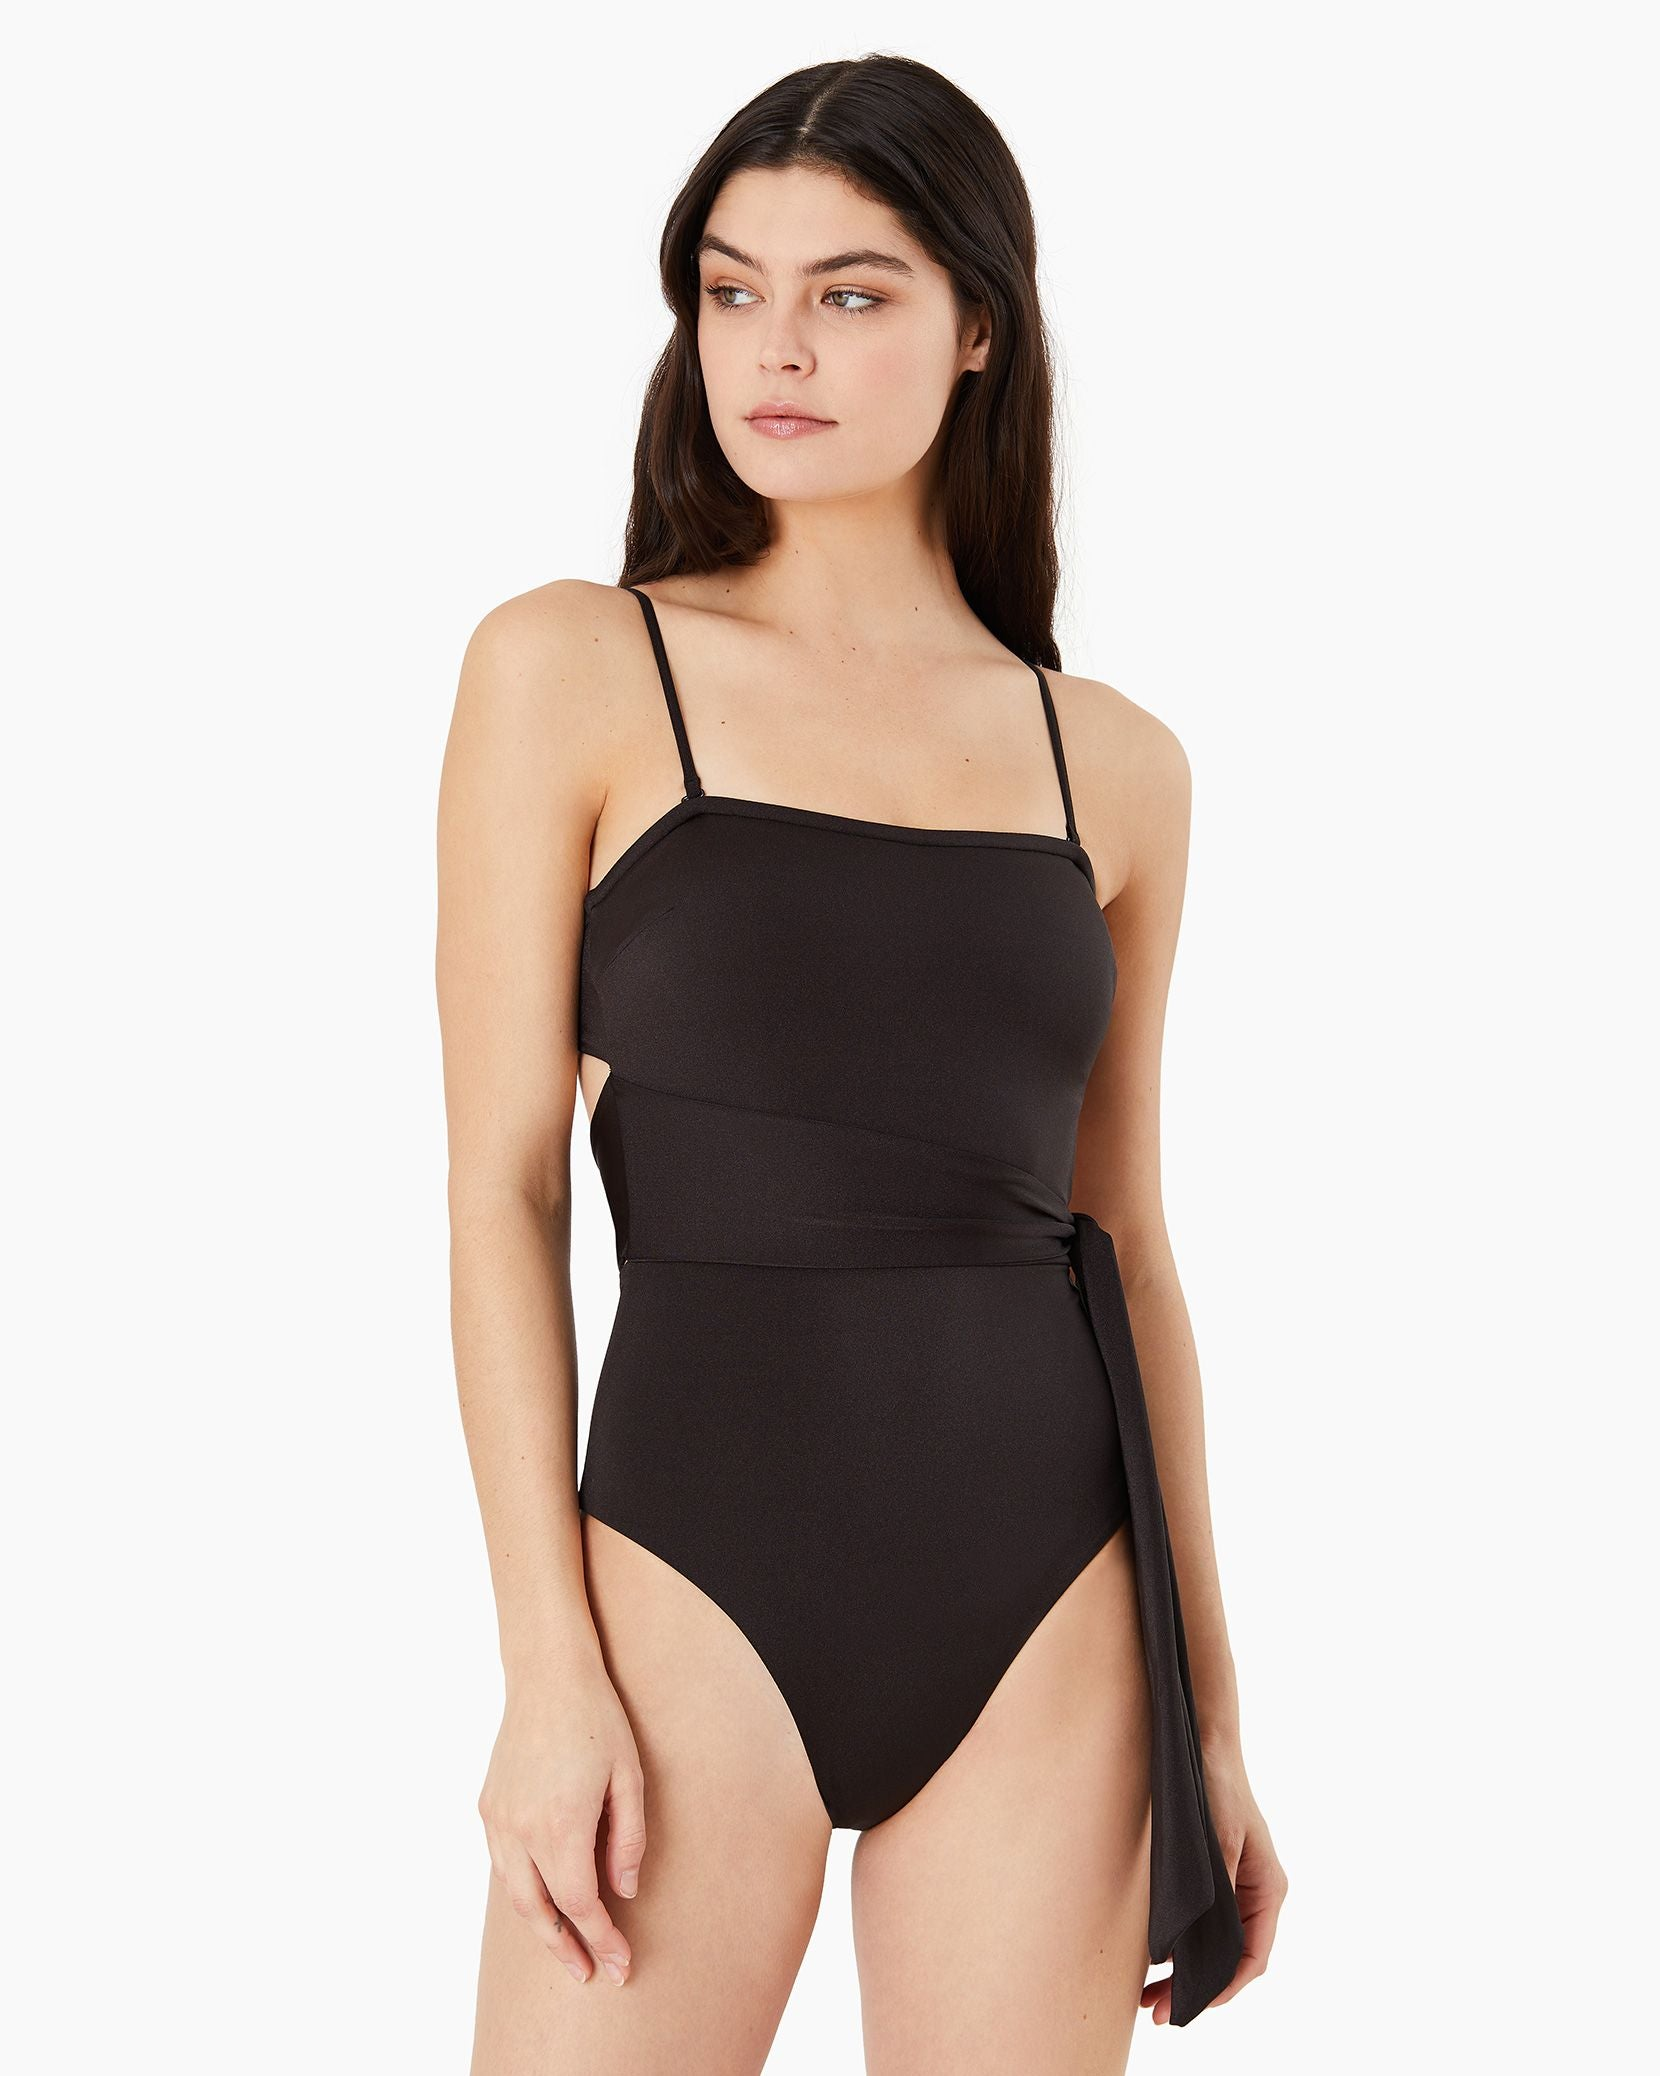 Charlotte One Piece in Metallic Solid Black - 1 - Onia